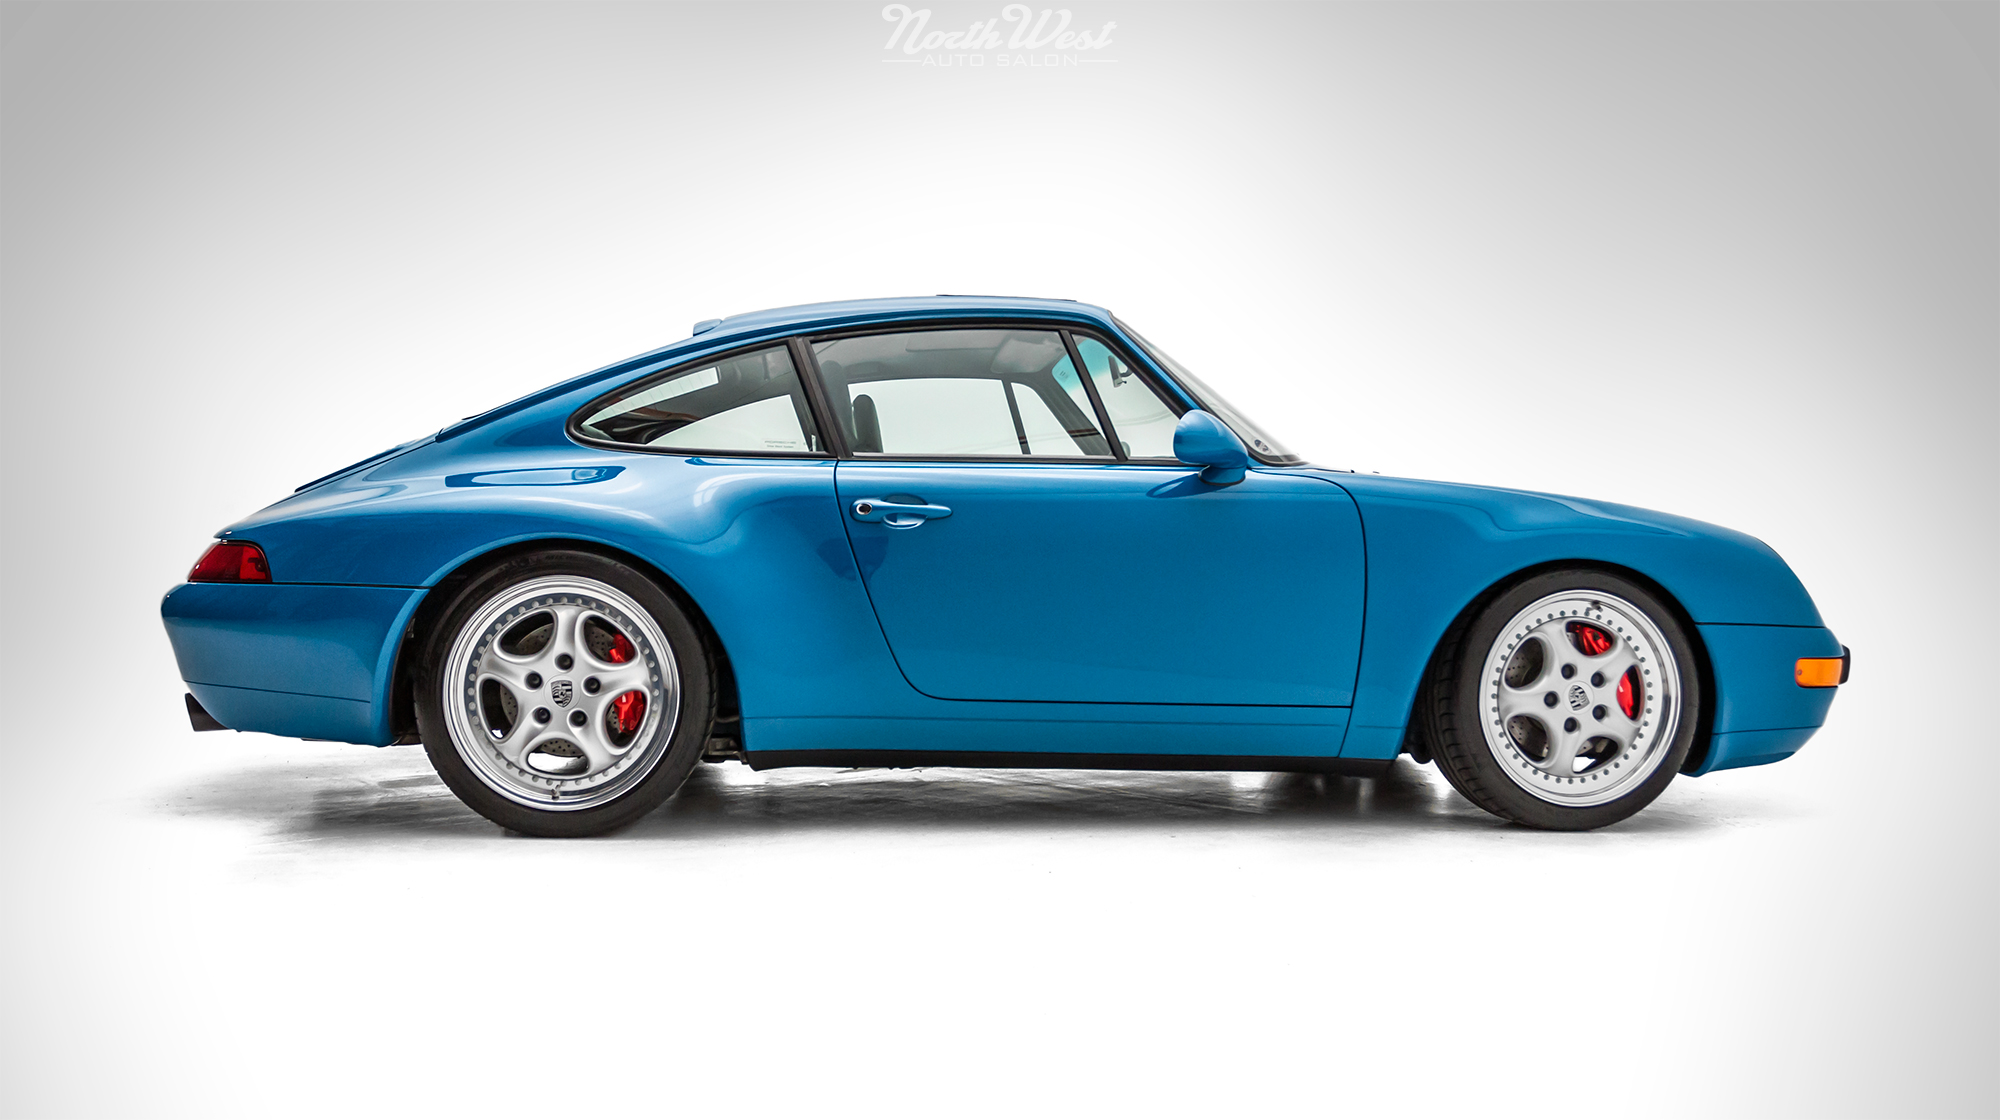 rare blue turquoise 993 recieves fanatic detail at nwas northwest auto salon. Black Bedroom Furniture Sets. Home Design Ideas